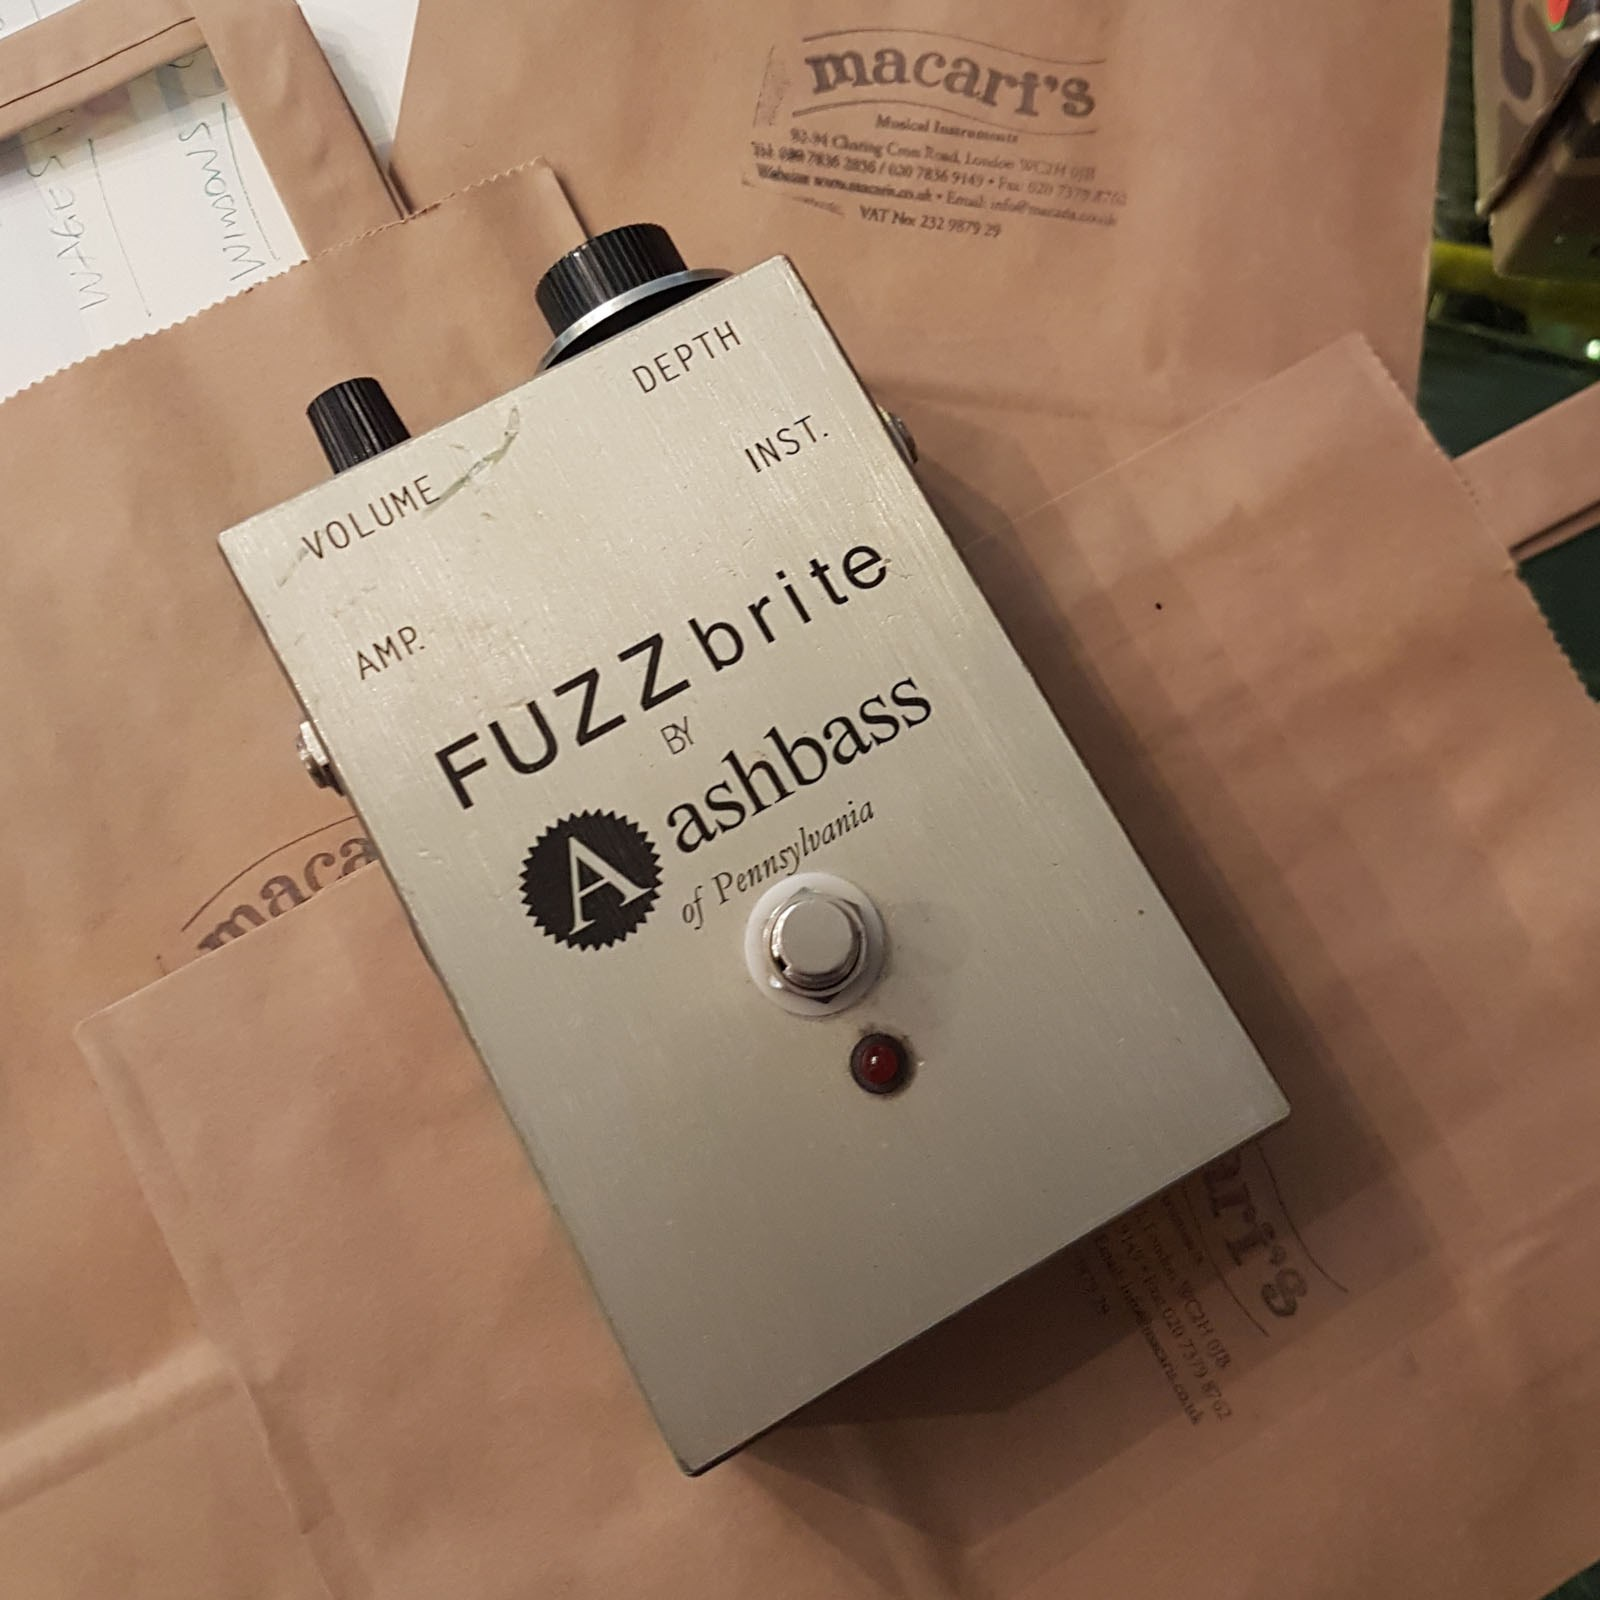 used ashbass fuzzbrite